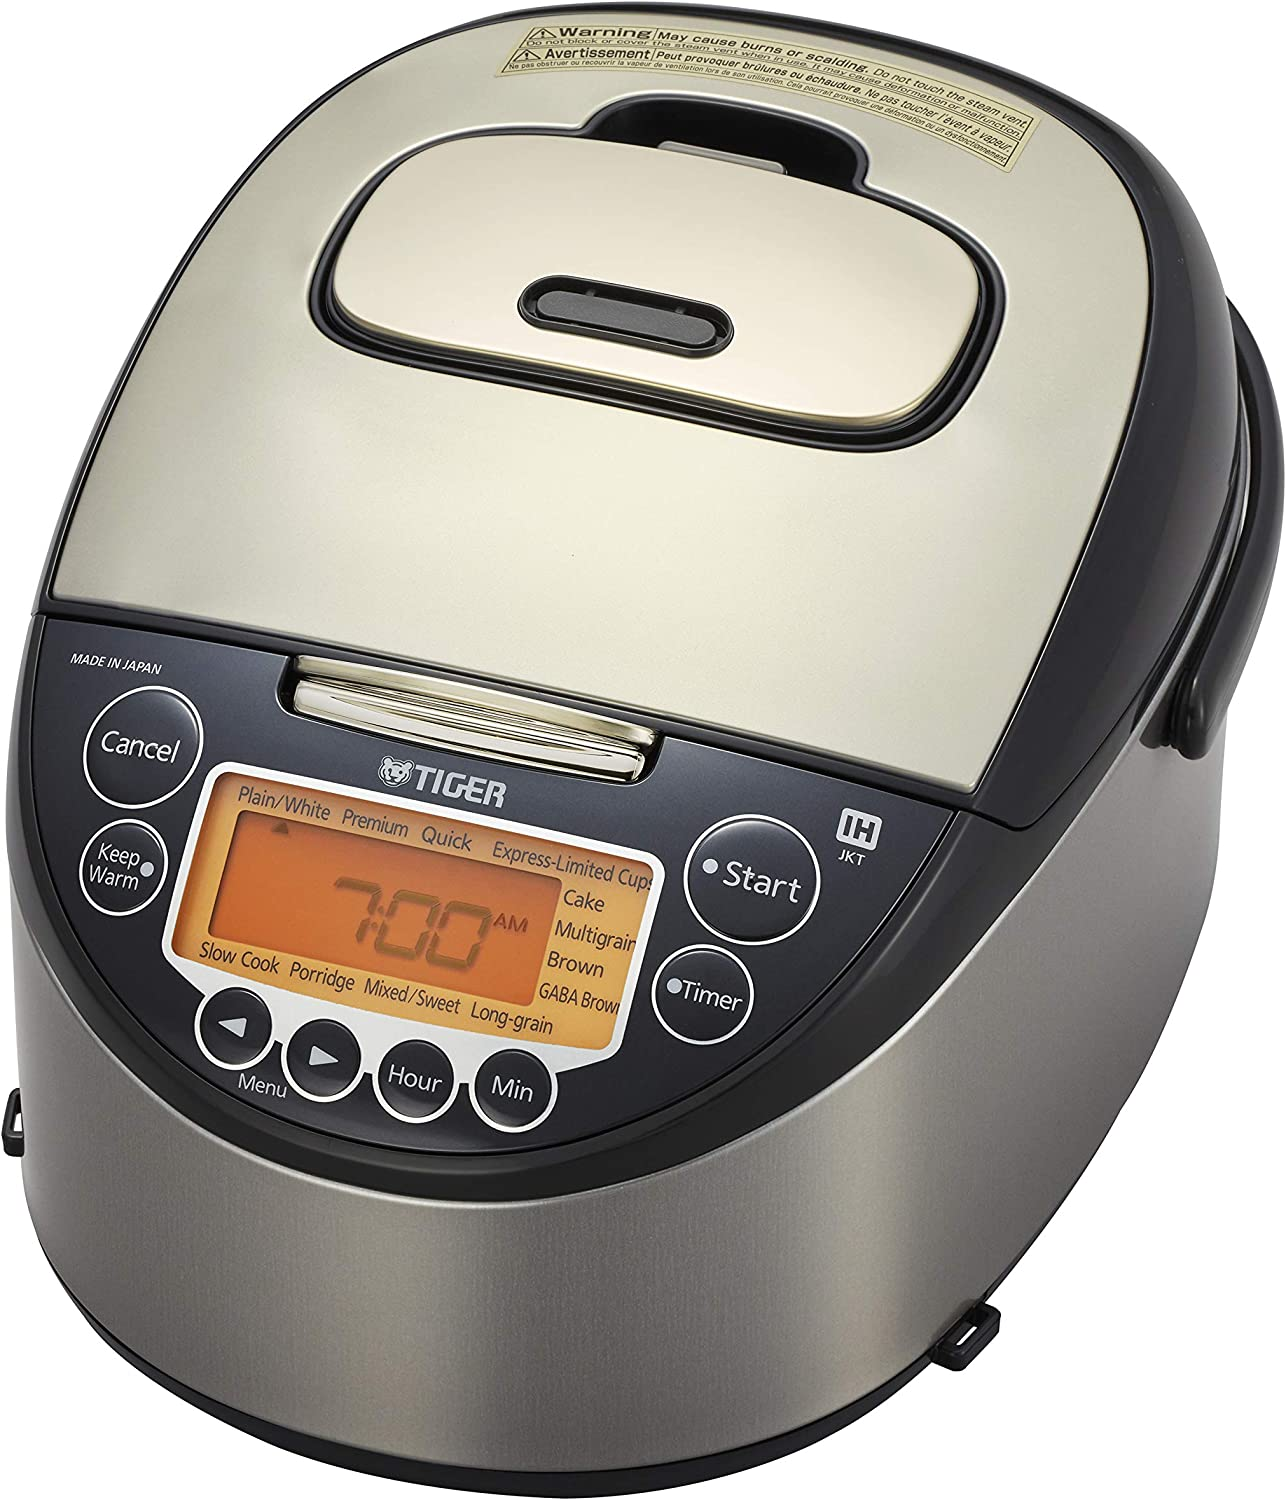 Tiger Corporation Tiger JKT-D10U 5.5-Cup (Uncooked) IH Rice Cooker, black & stainless steel